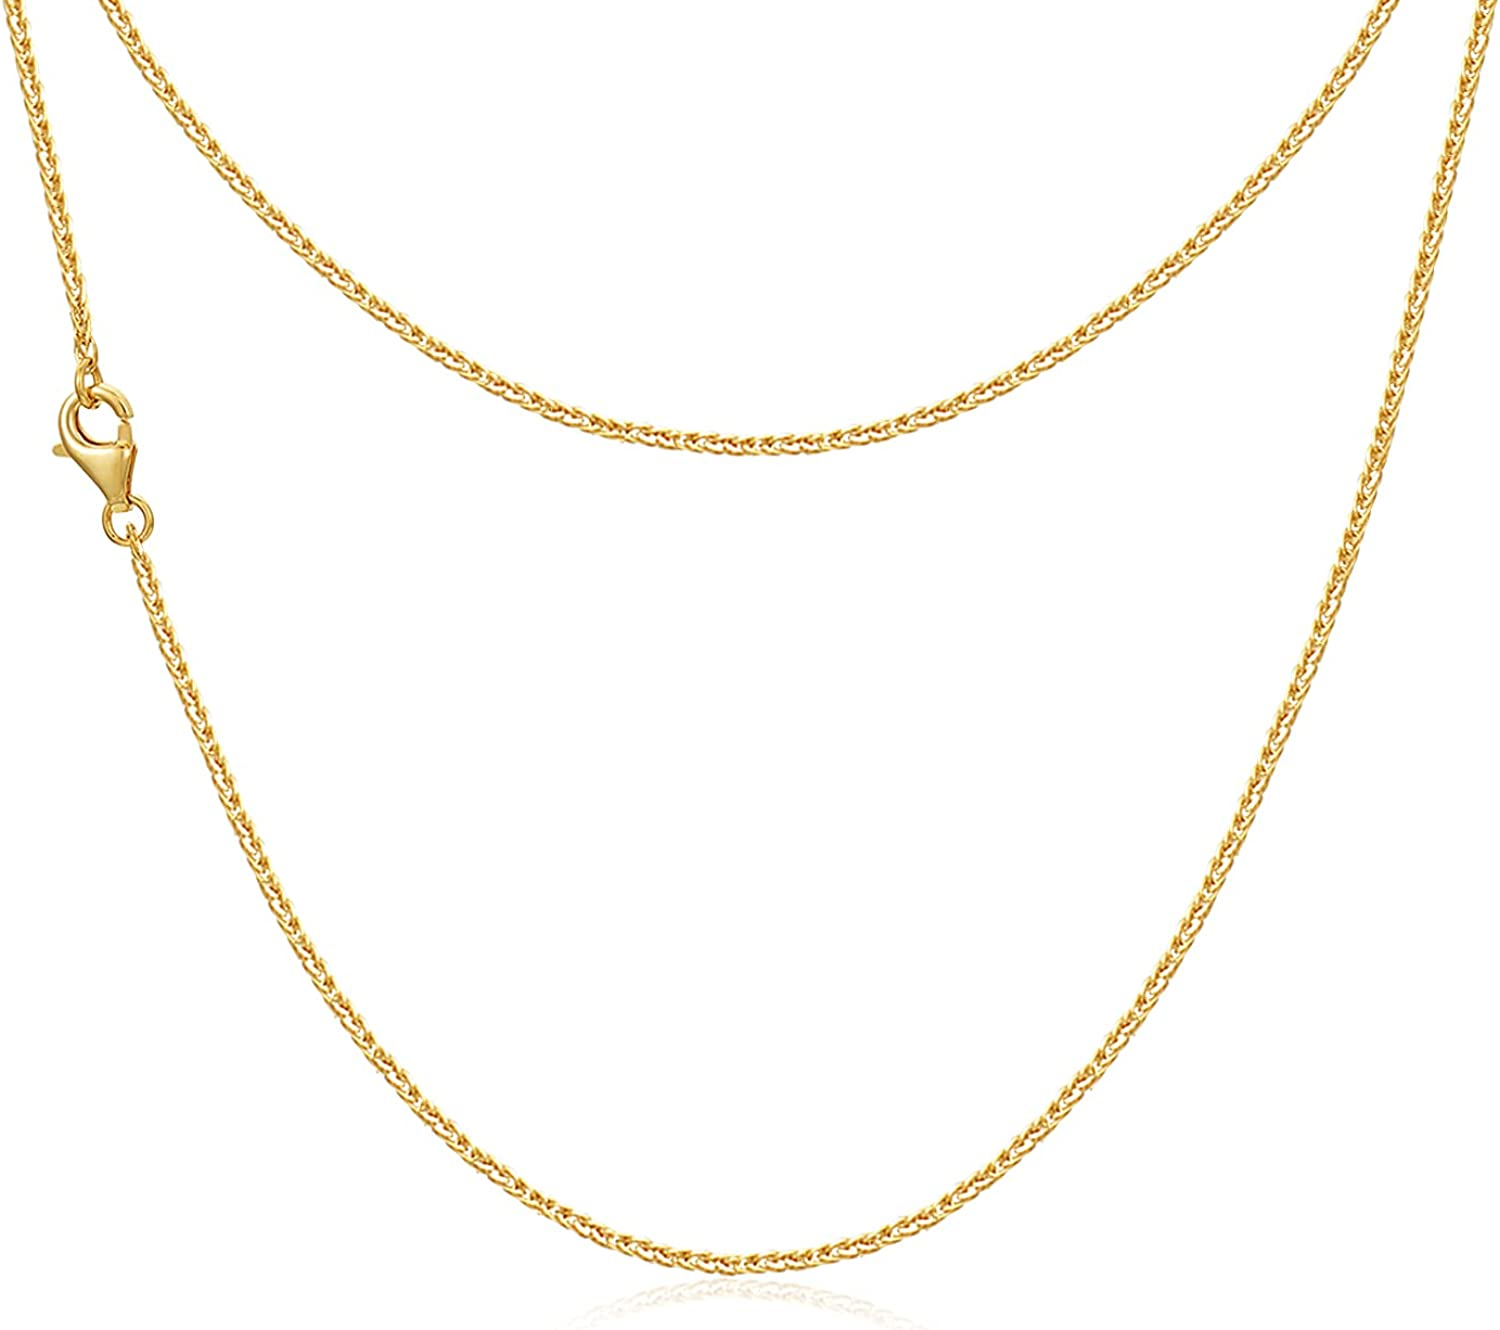 Solid 14K/18K Gold Wheat Chain Necklace Jewelry for Women, Yellow Gold Shiny Braided Wheat Chain Necklace with Lobster Claw Clasp, 16/18/20/22inch